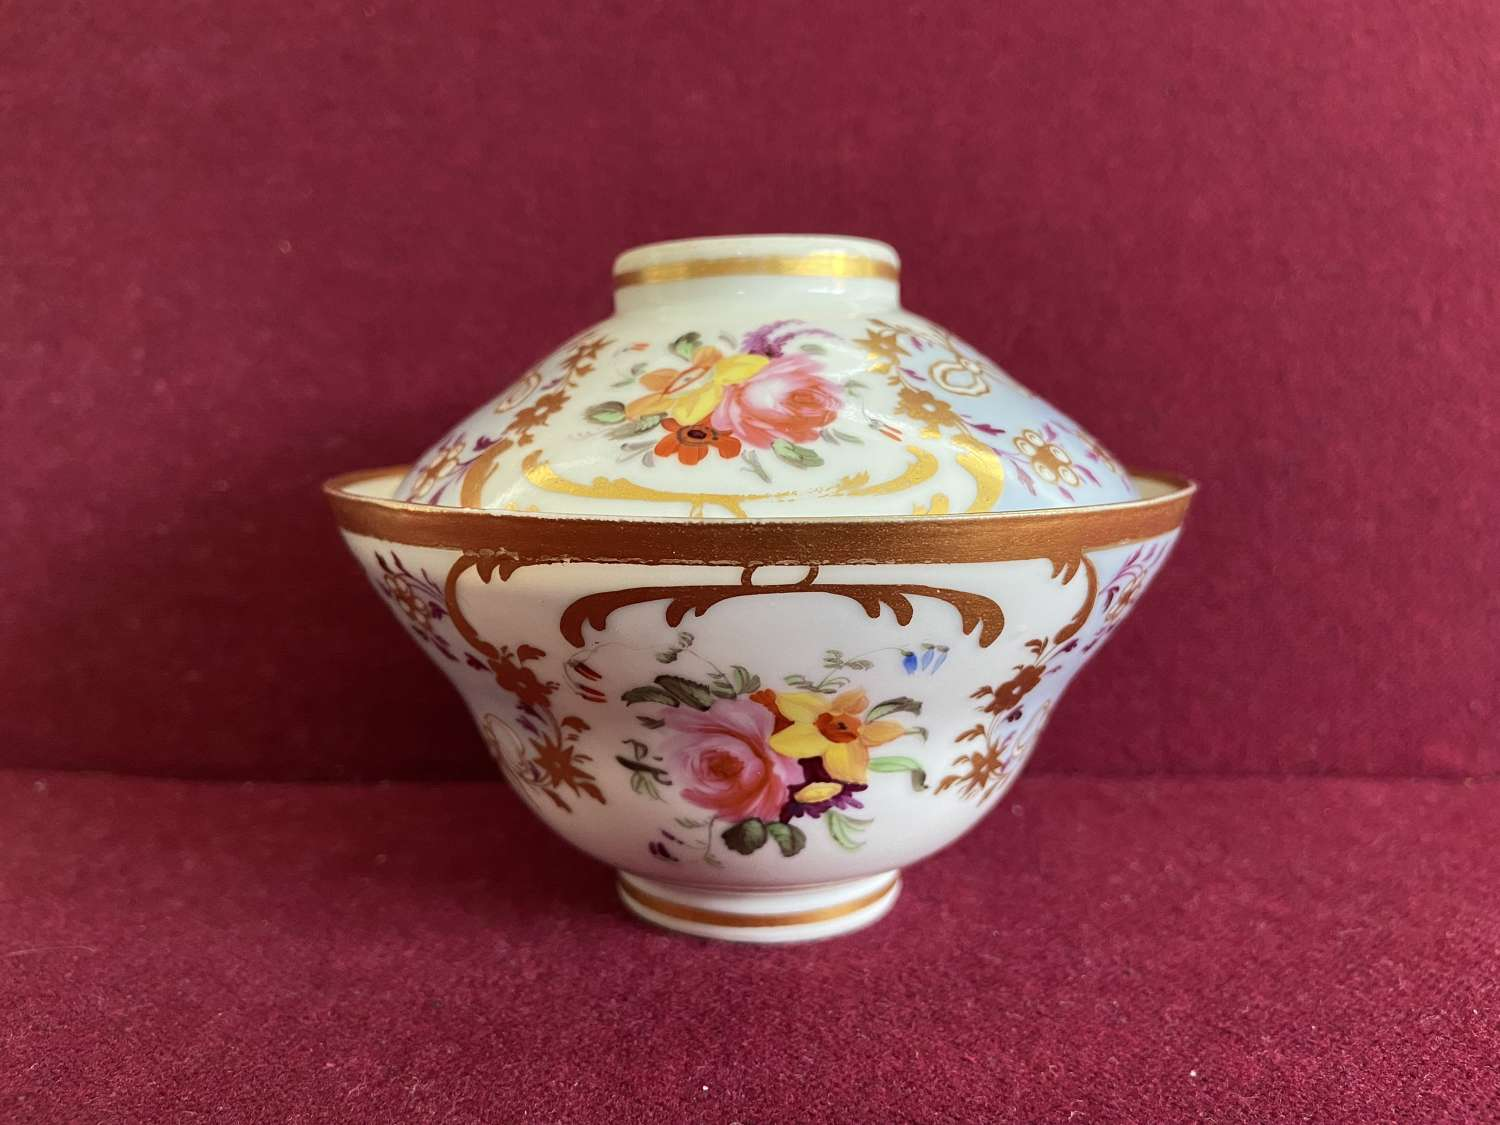 A Chinese Porcelain Rice Bowl with English Decoration c.1815